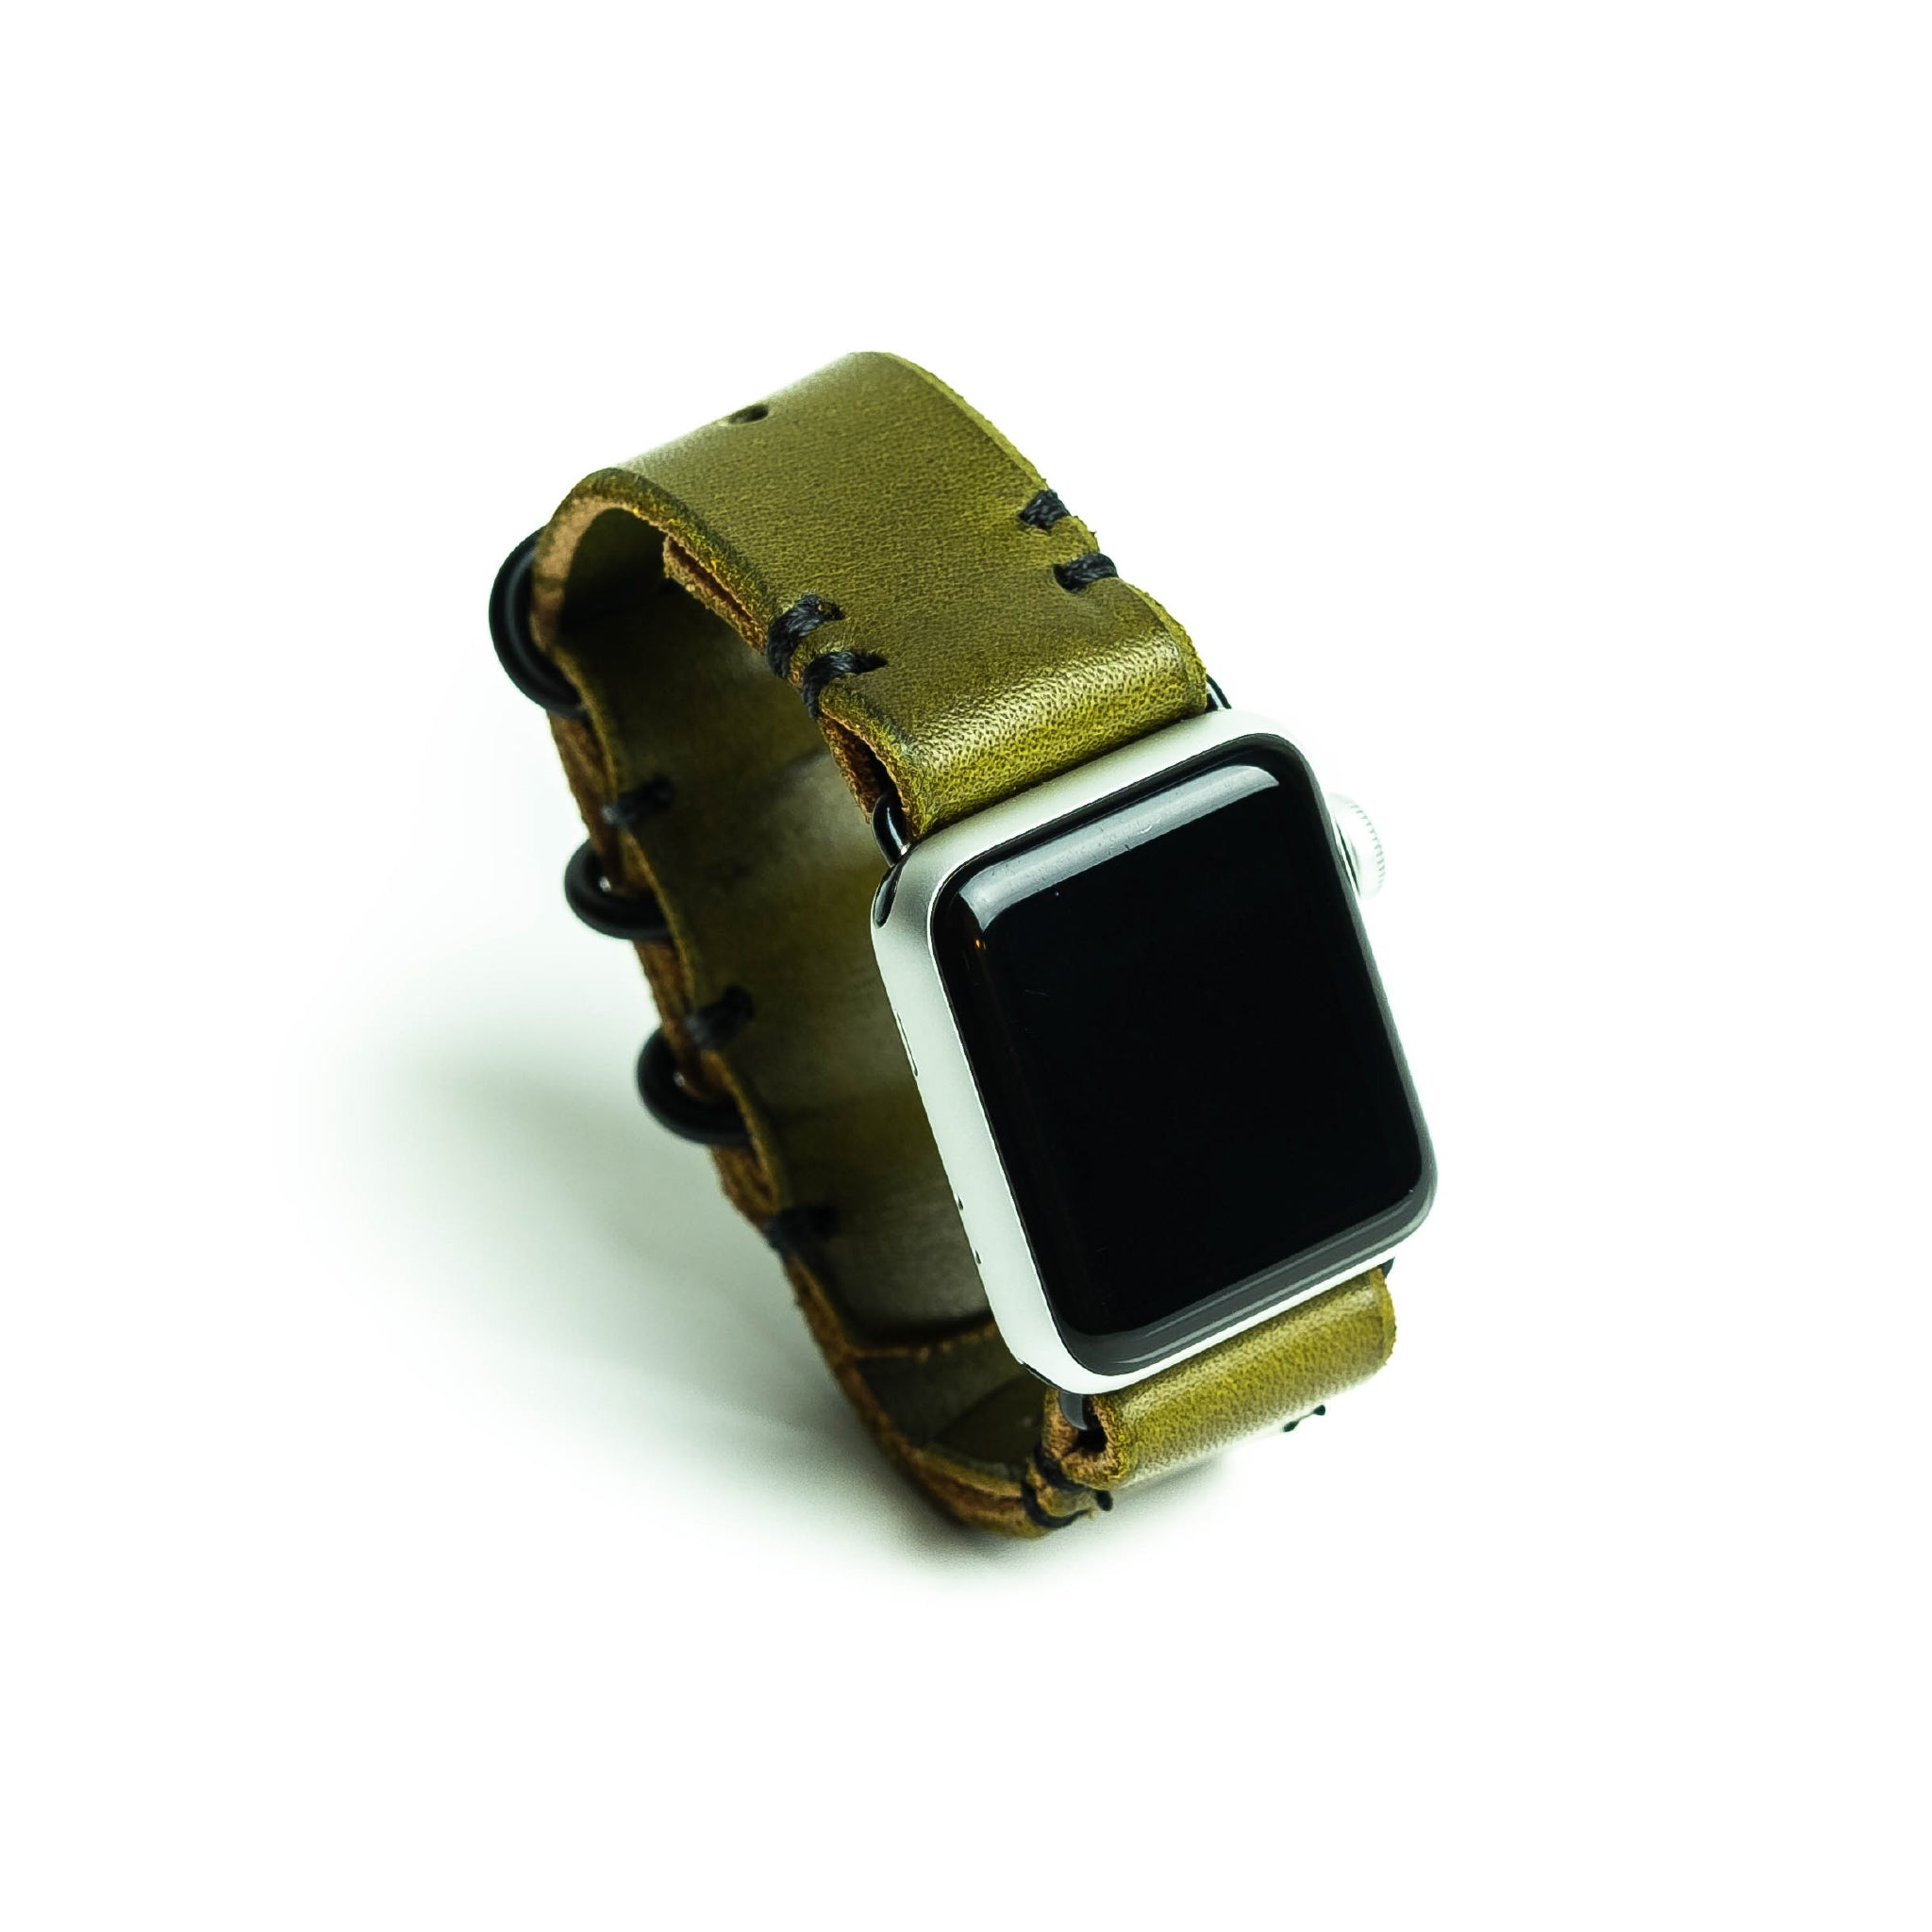 Mission Watch Band (Classic Watch) - Olive